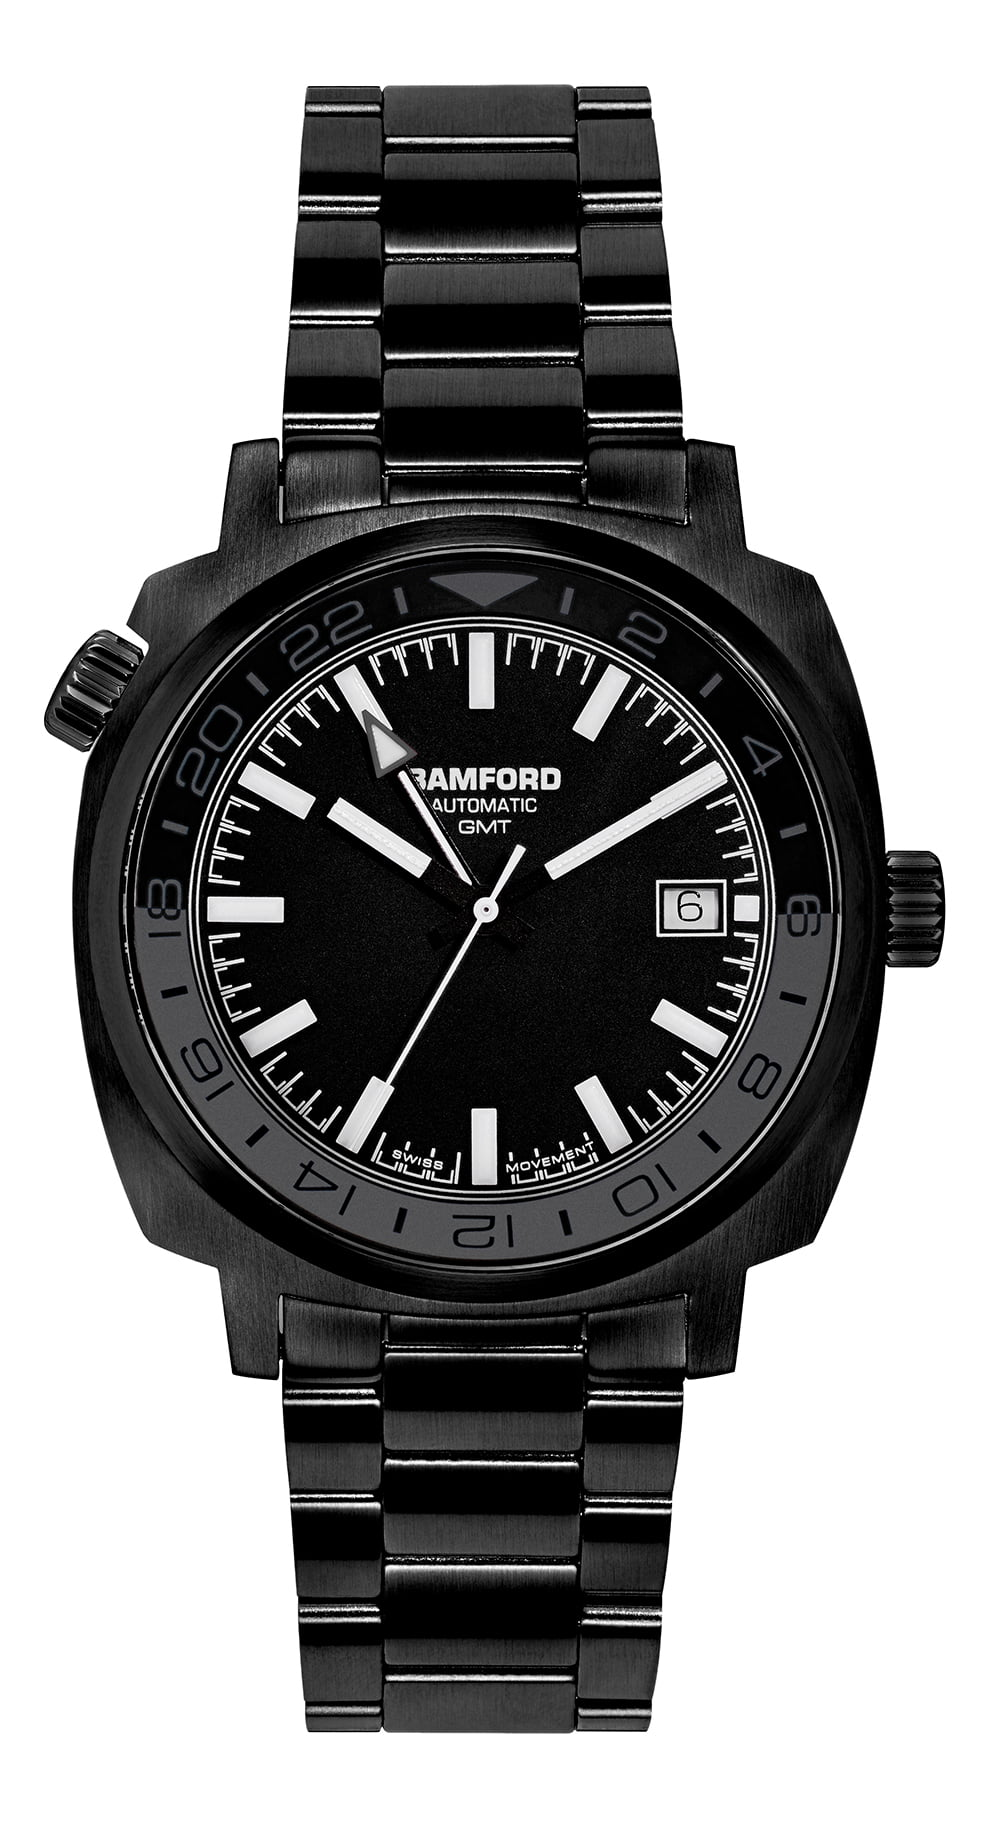 https://cdn.shopify.com/s/files/1/0140/7218/4890/products/Bamford_GMT_Predator_BLACK_Bracelet_Cutout_1536x.jpg?v=1588601381